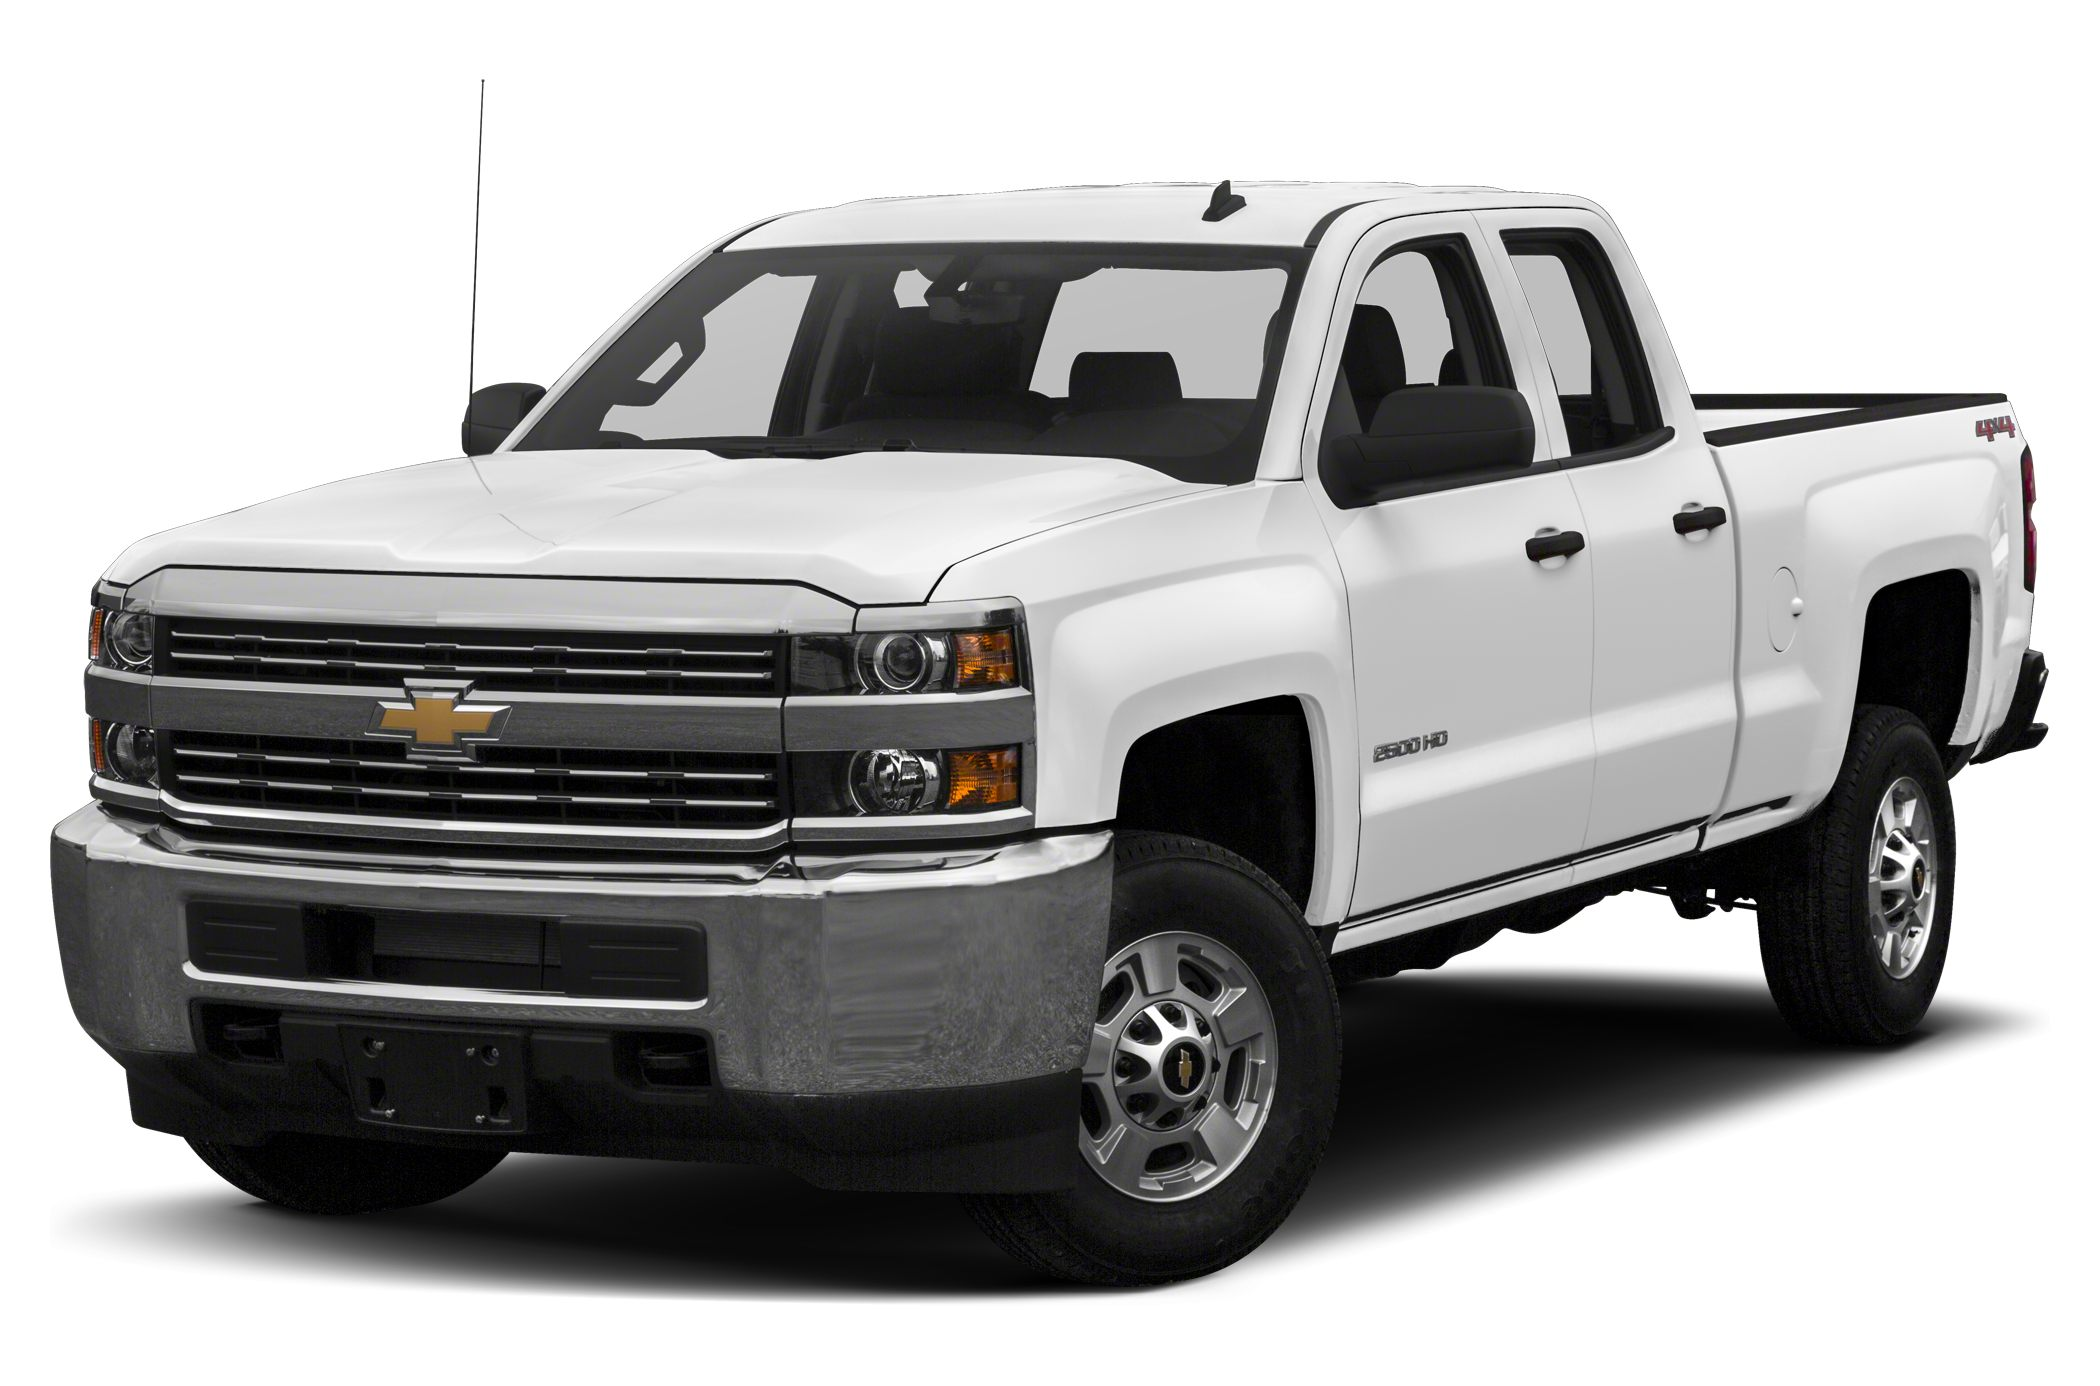 2015 Chevrolet Silverado 2500 LTZ Crew Cab Pickup for sale in Knoxville for $62,280 with 3 miles.